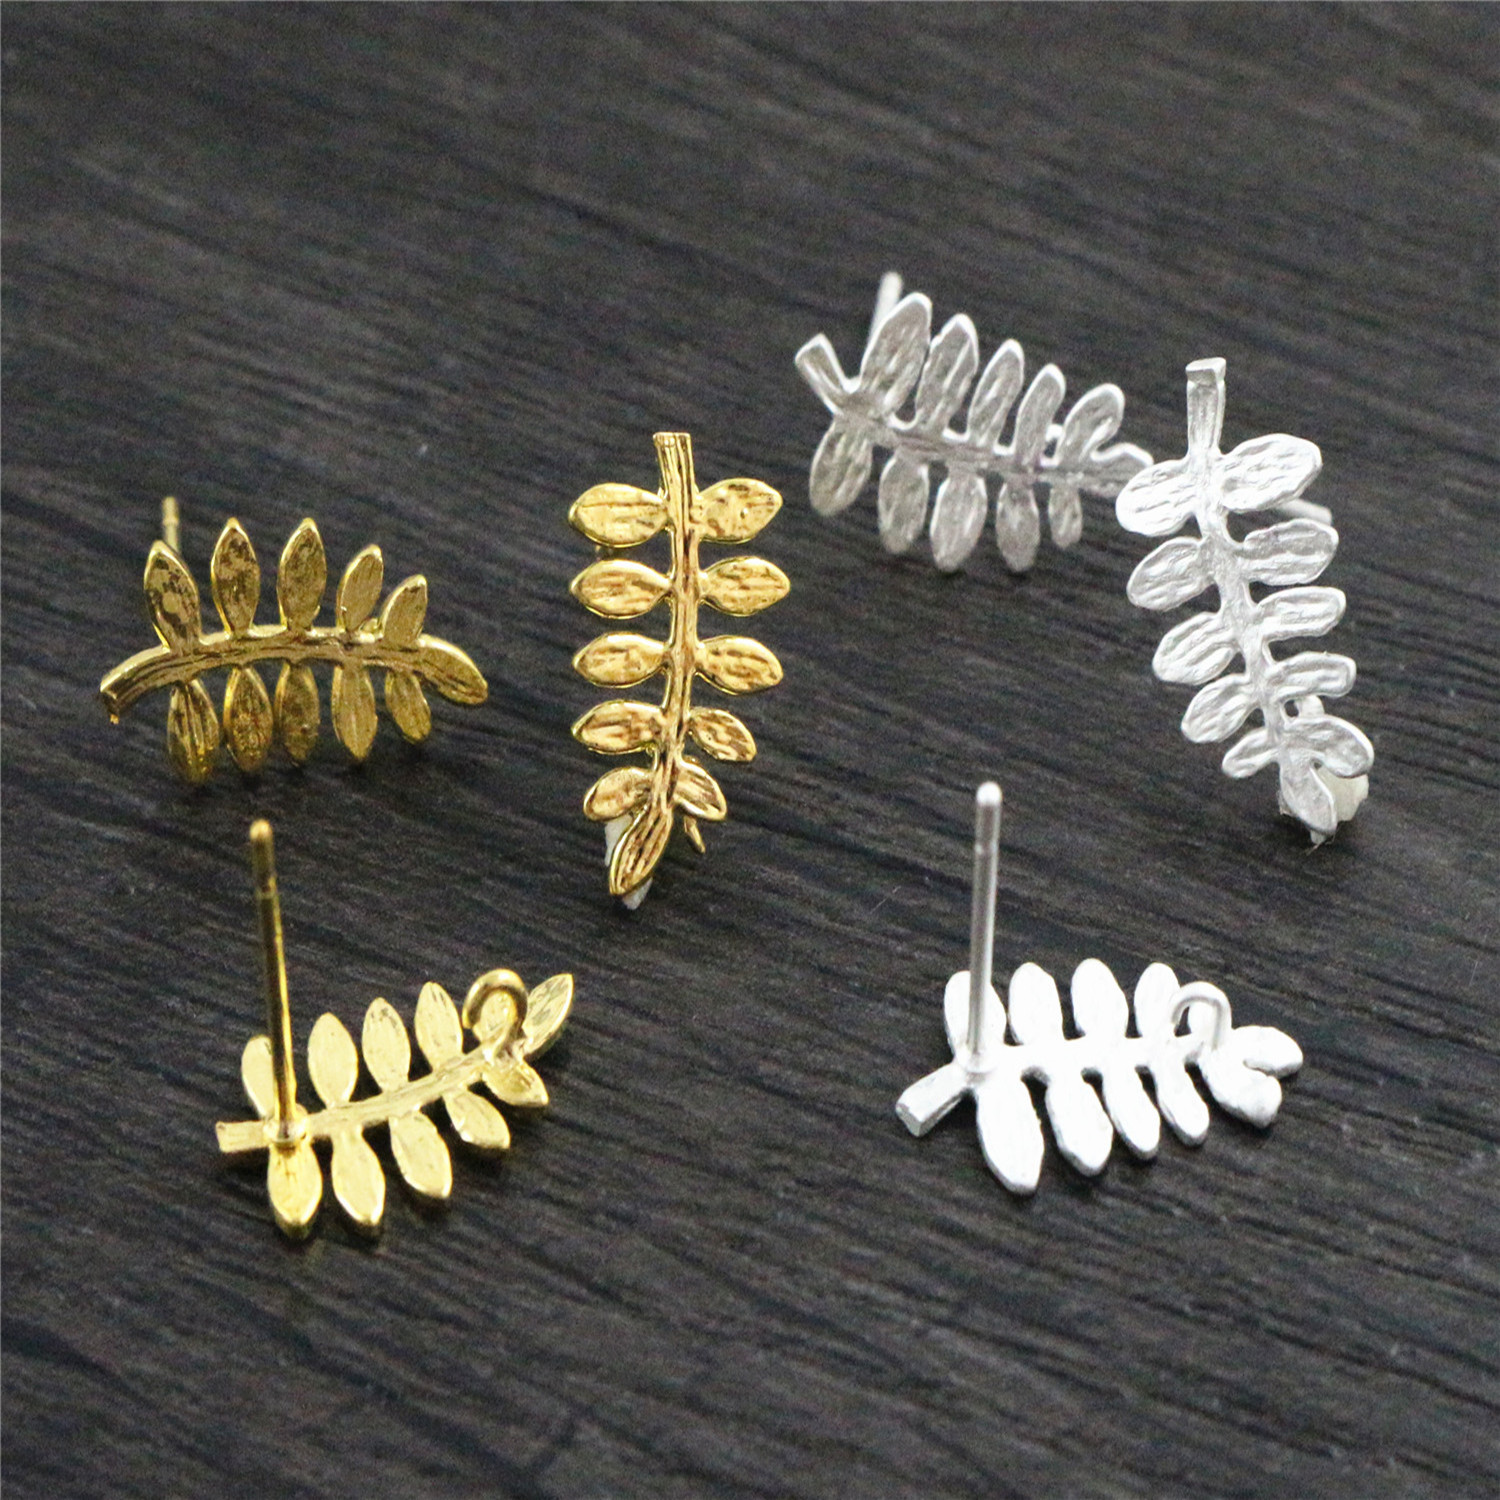 6pcs ( 3pair) 15x13mm Matte Silver Color Gold Color Leaf Ear Hooks Earring Wires For Handmade Women Fashion Jewelry Earrings